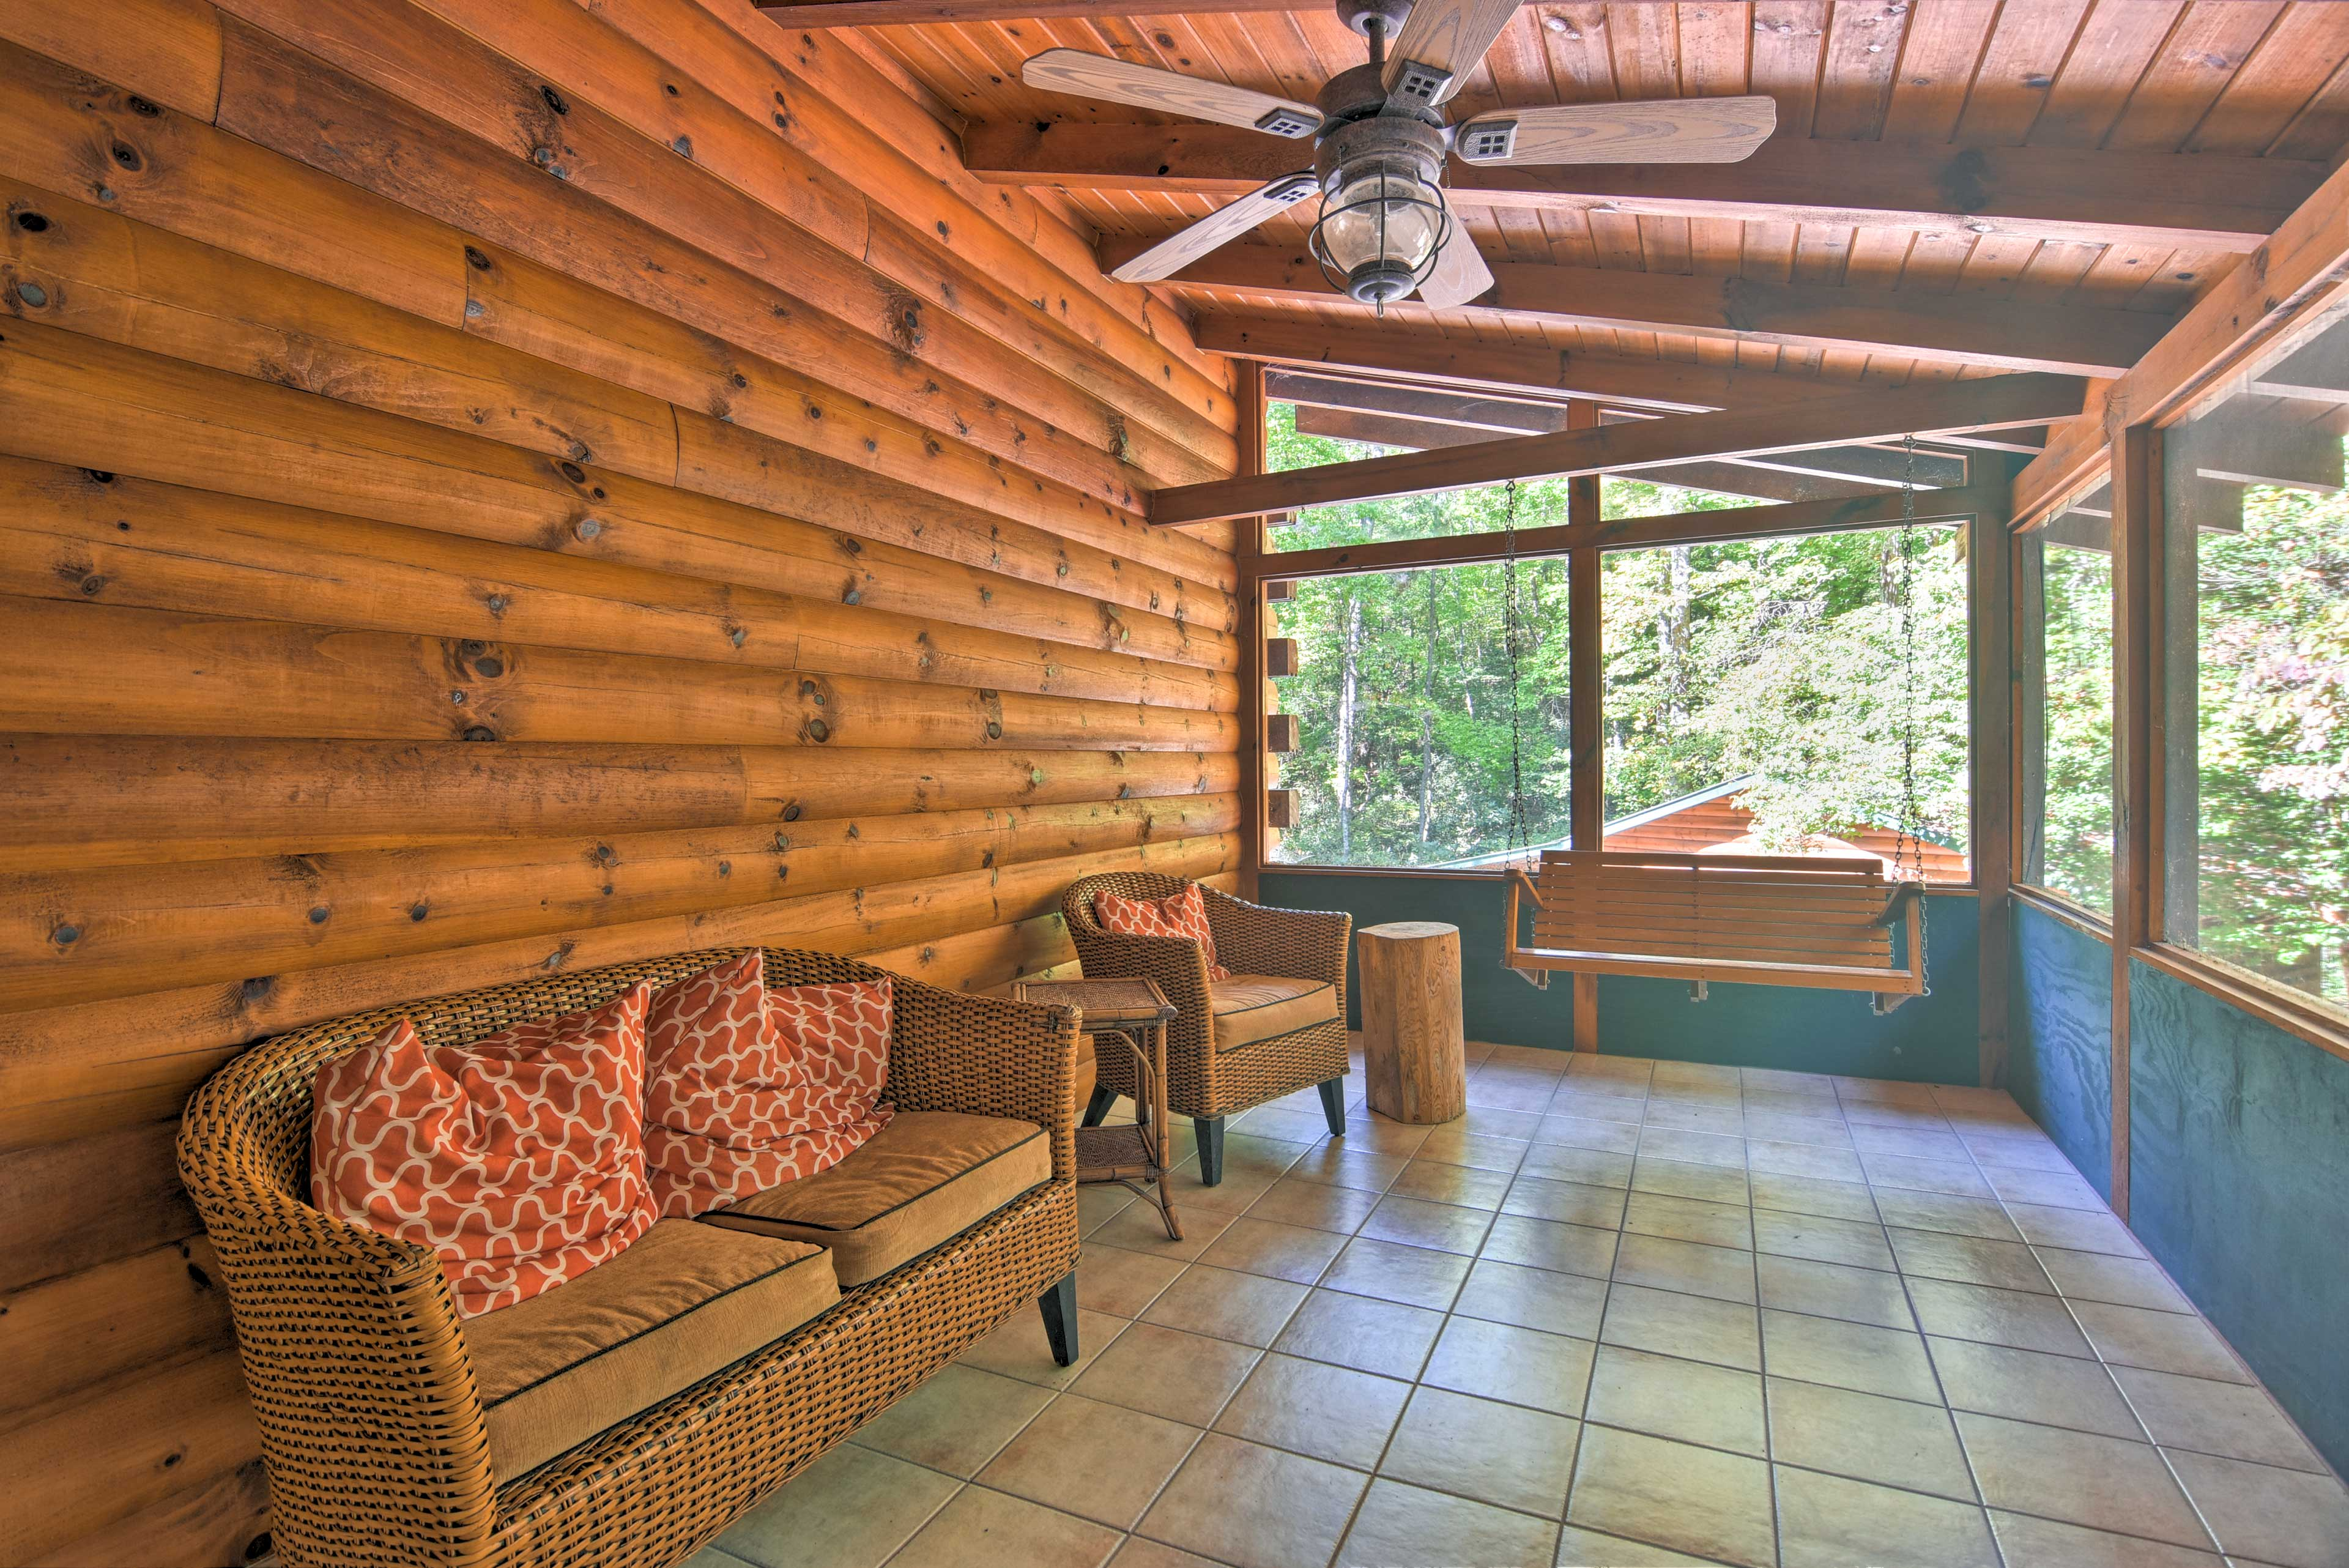 Spend countless hours enjoying the views from the screened porch.